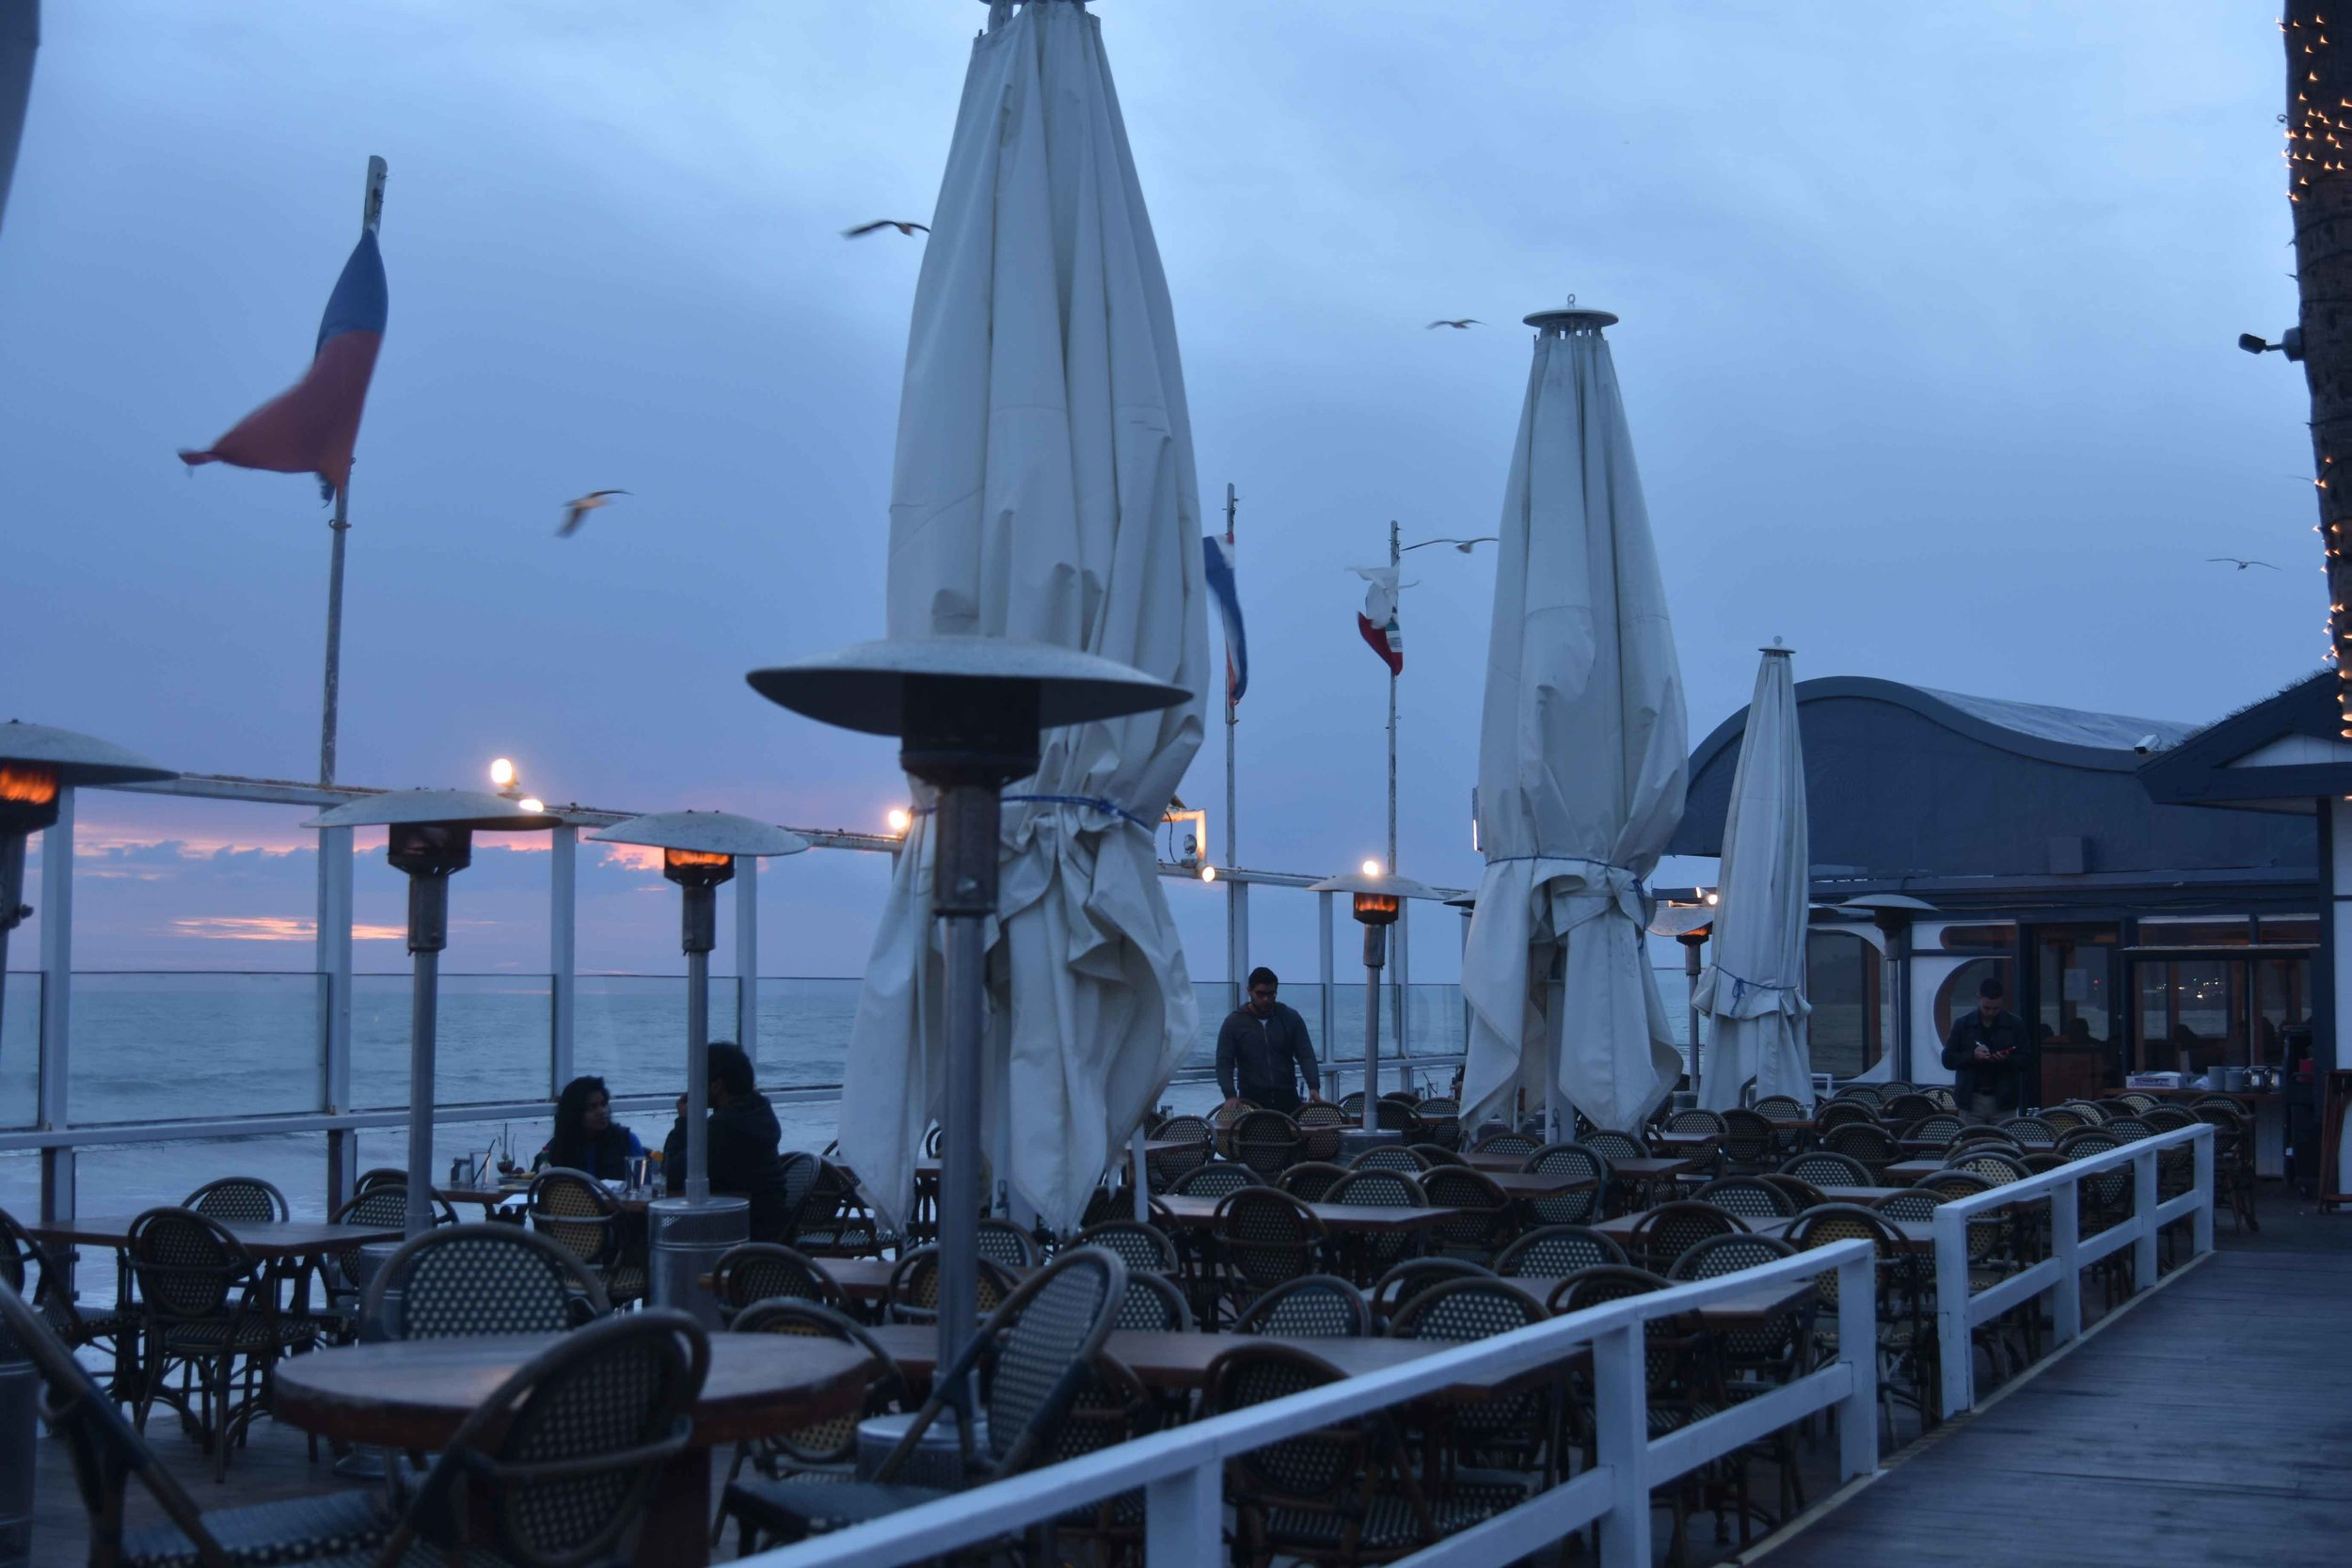 Gladstones, beach restaurant, Pacific Coast Highway Beach, Pacific Palisades, CA. Image©thingstodot.com